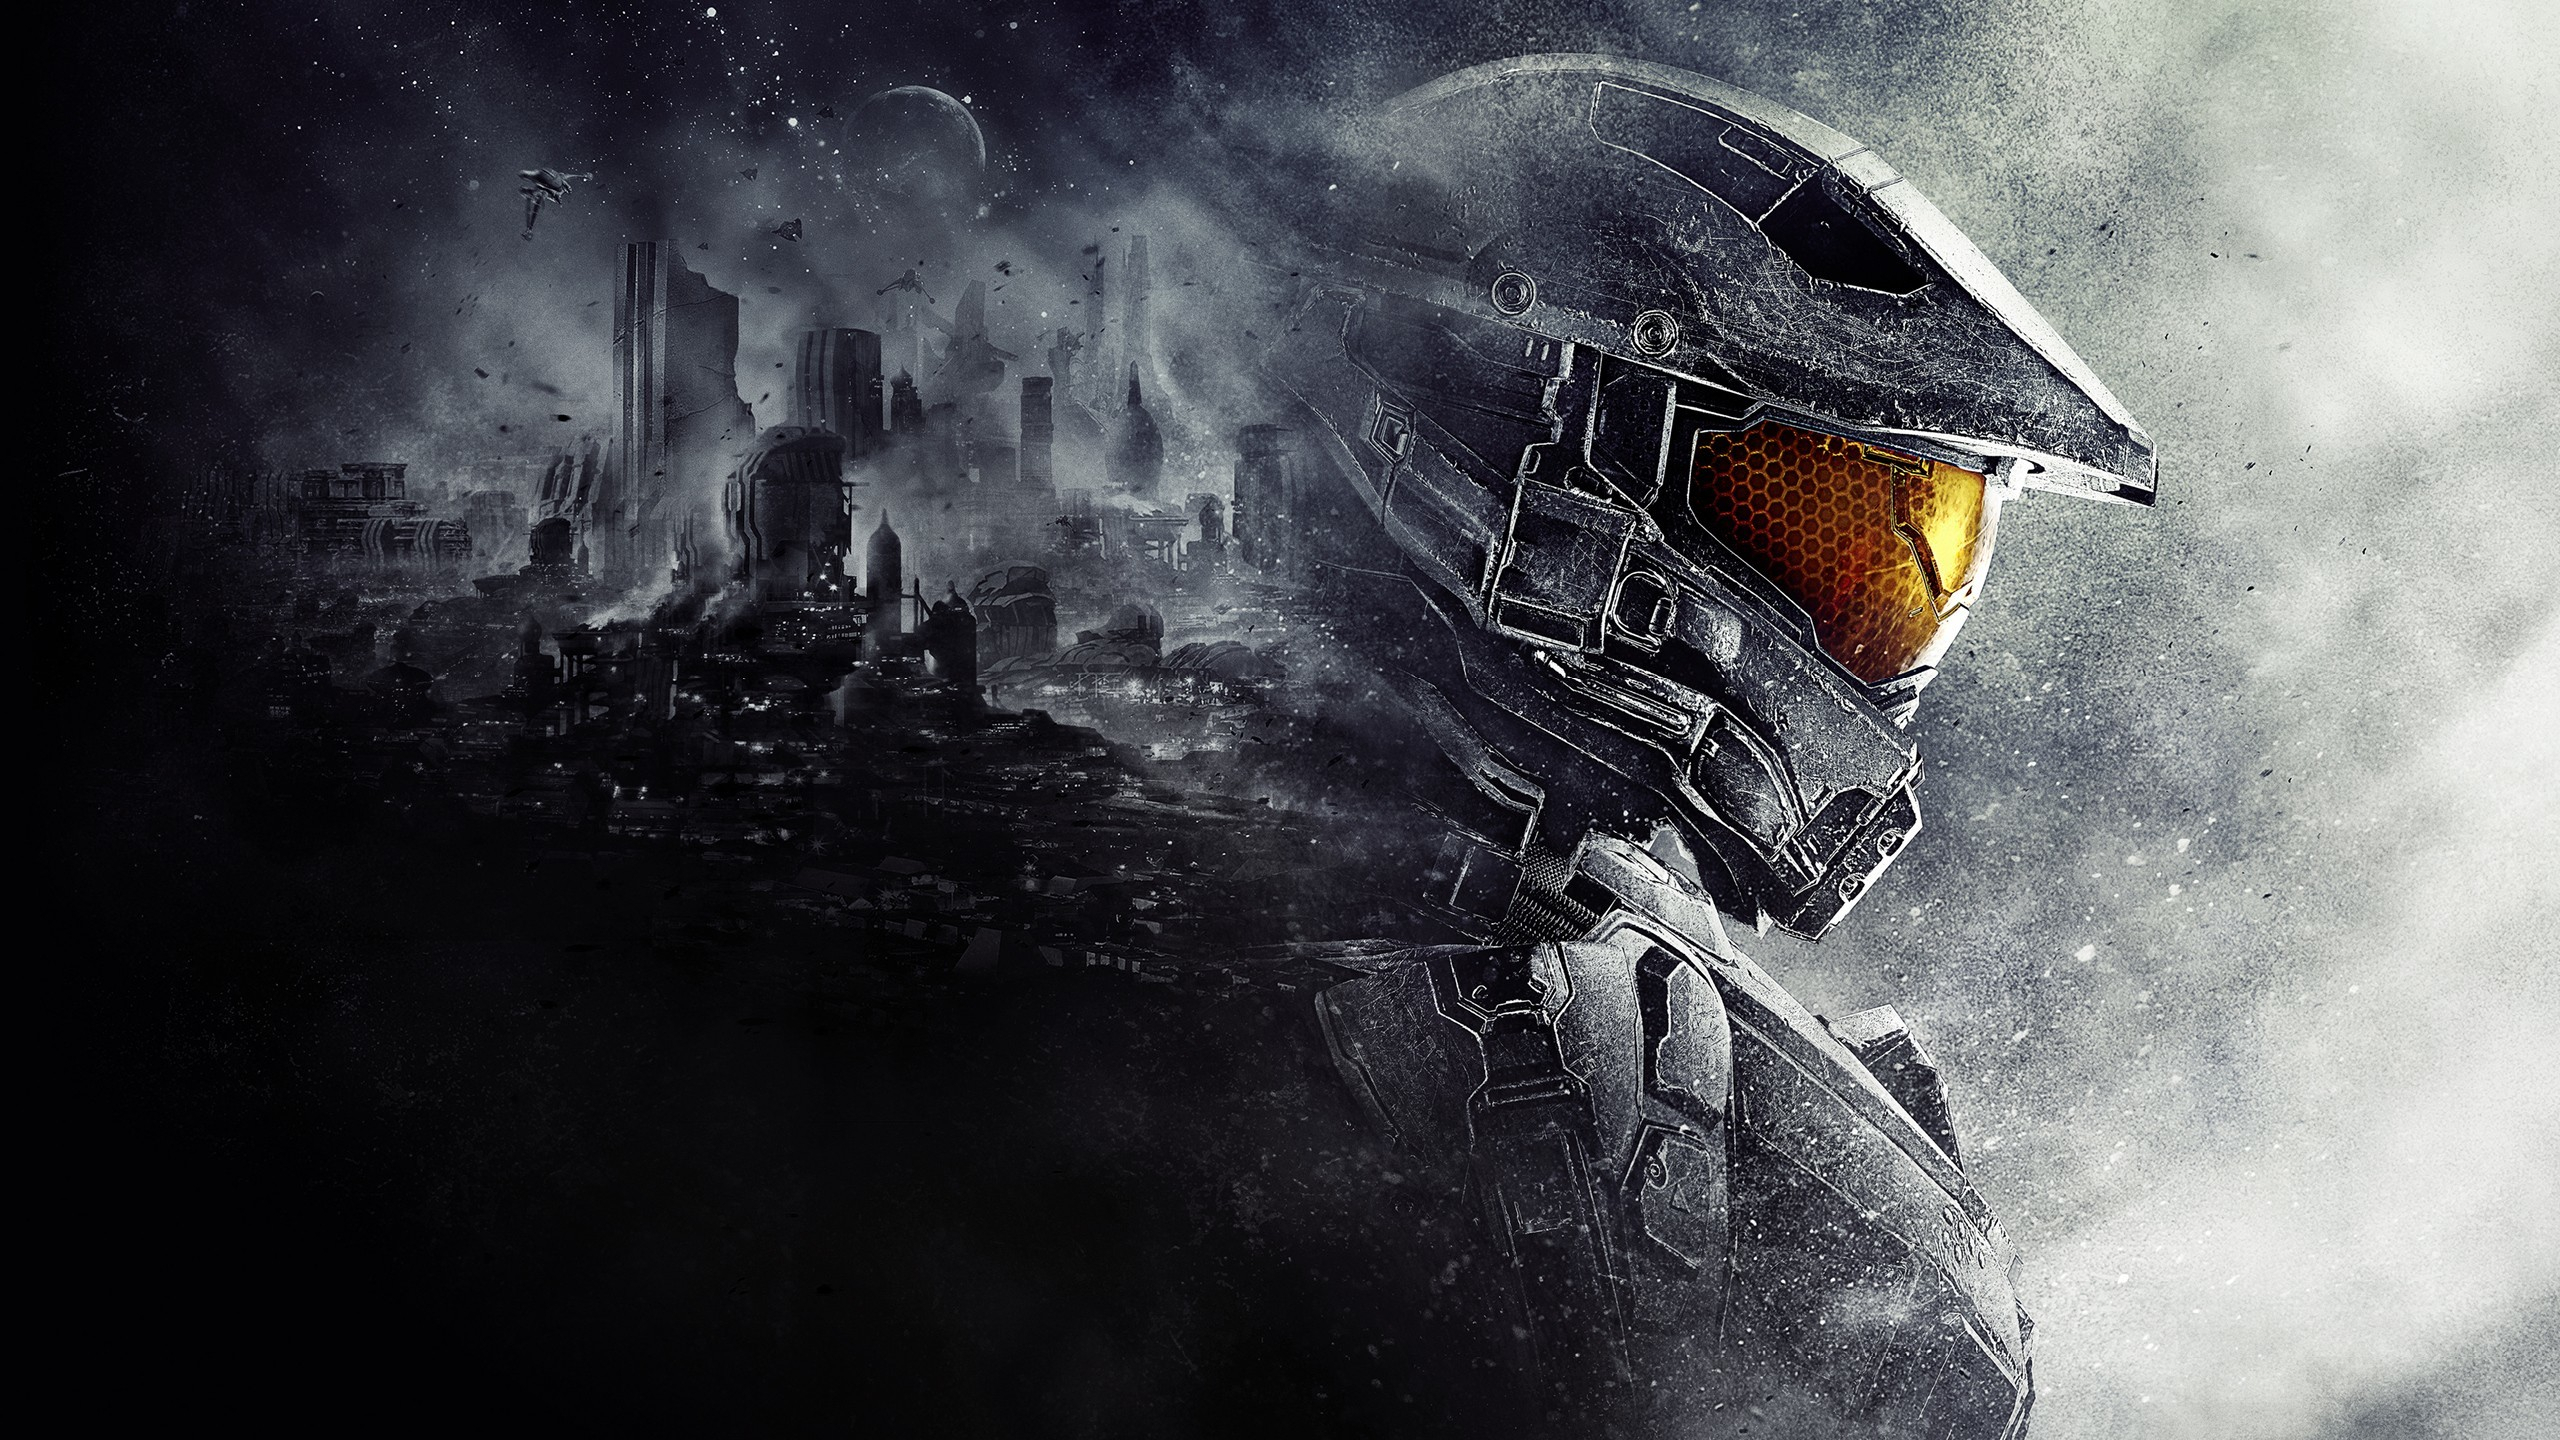 75+ halo desktop wallpapers on wallpaperplay